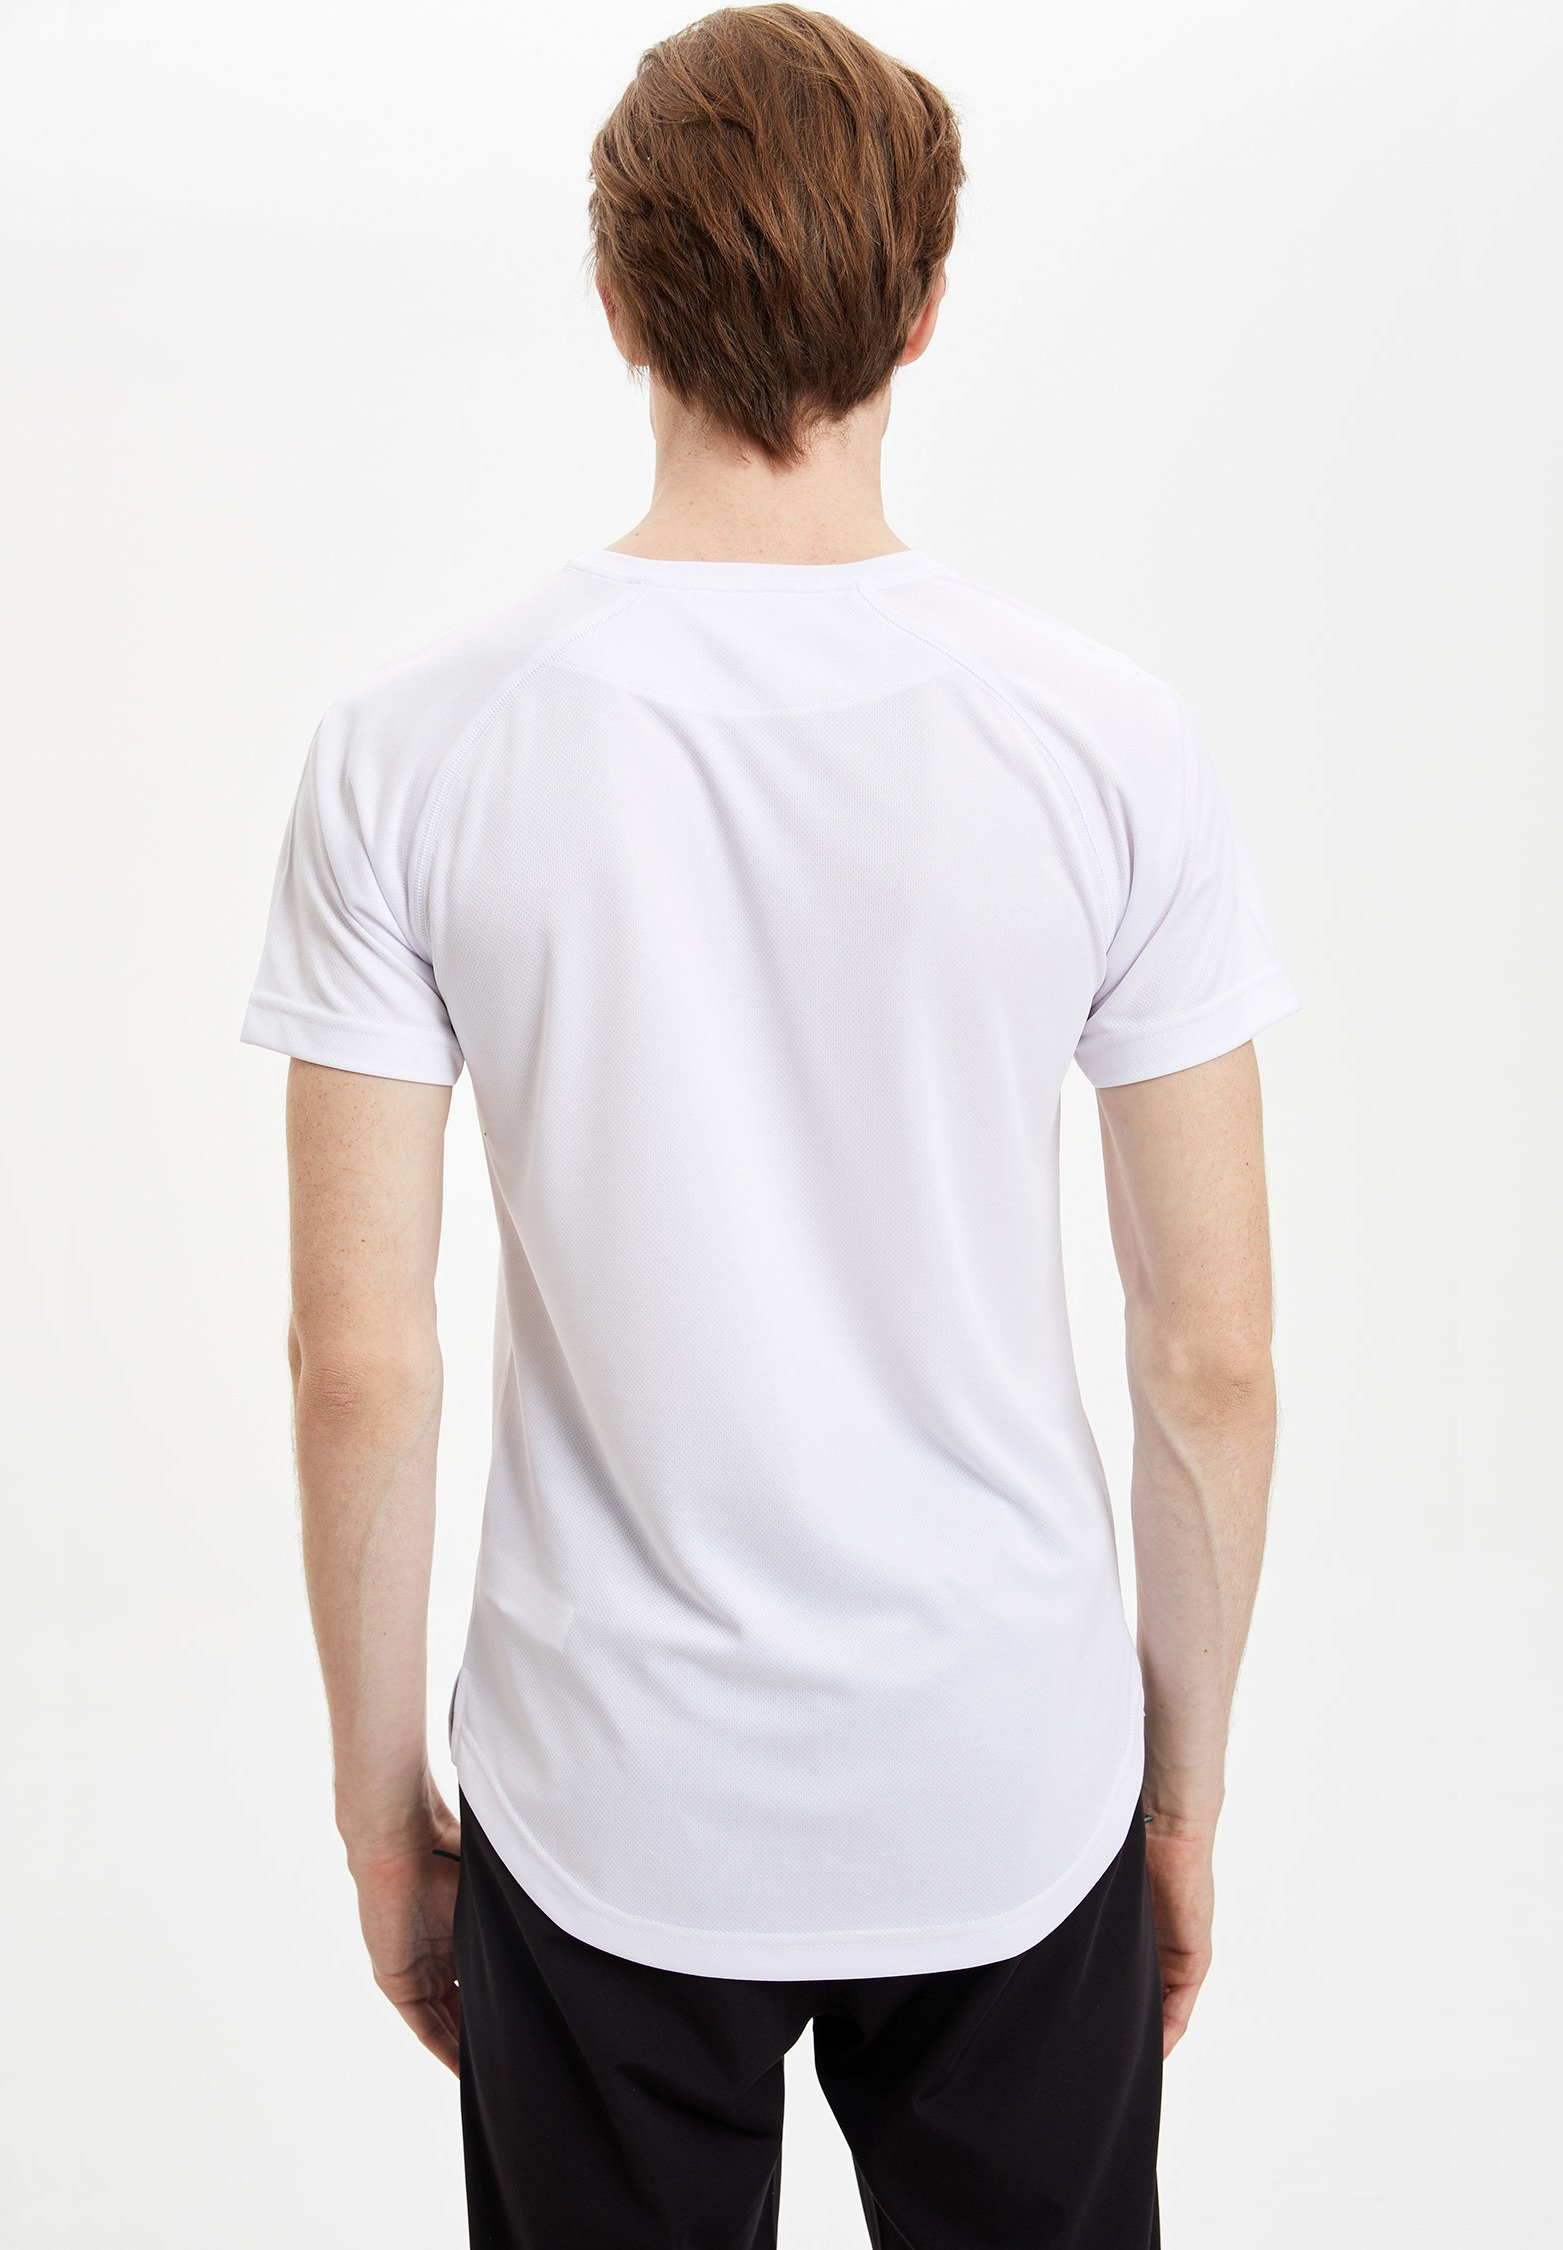 DeFacto Basic T-shirt - white d4Epl